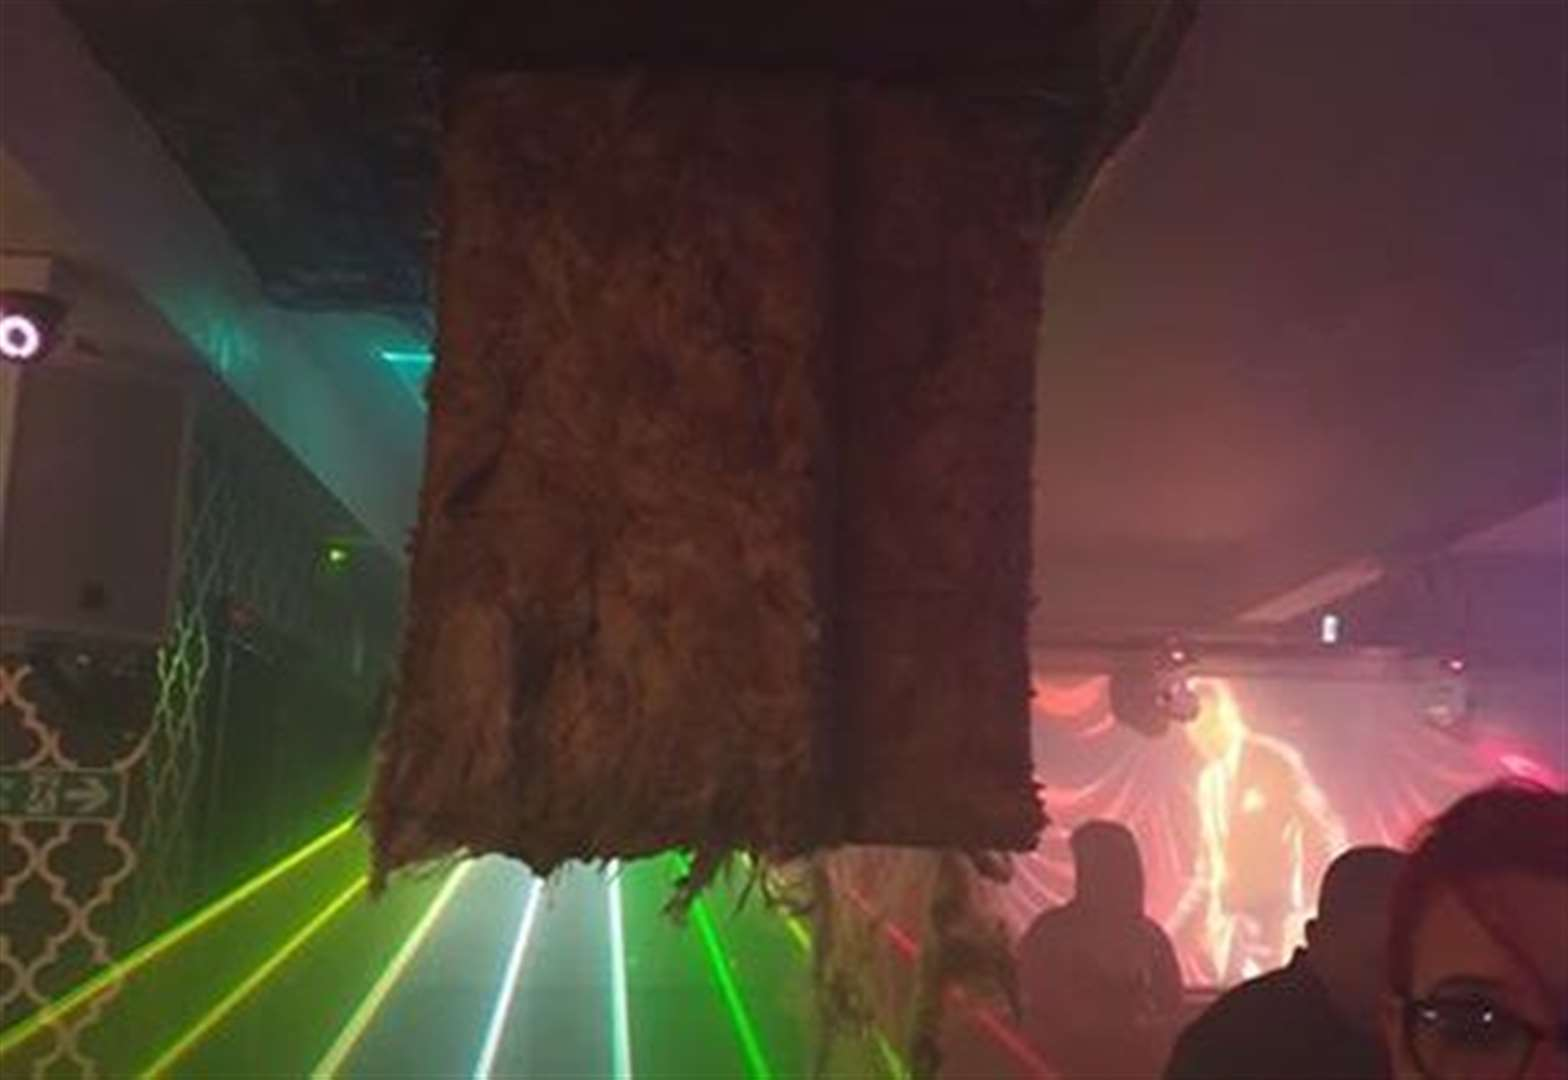 Ceiling collapses on clubbers in Grantham night spot